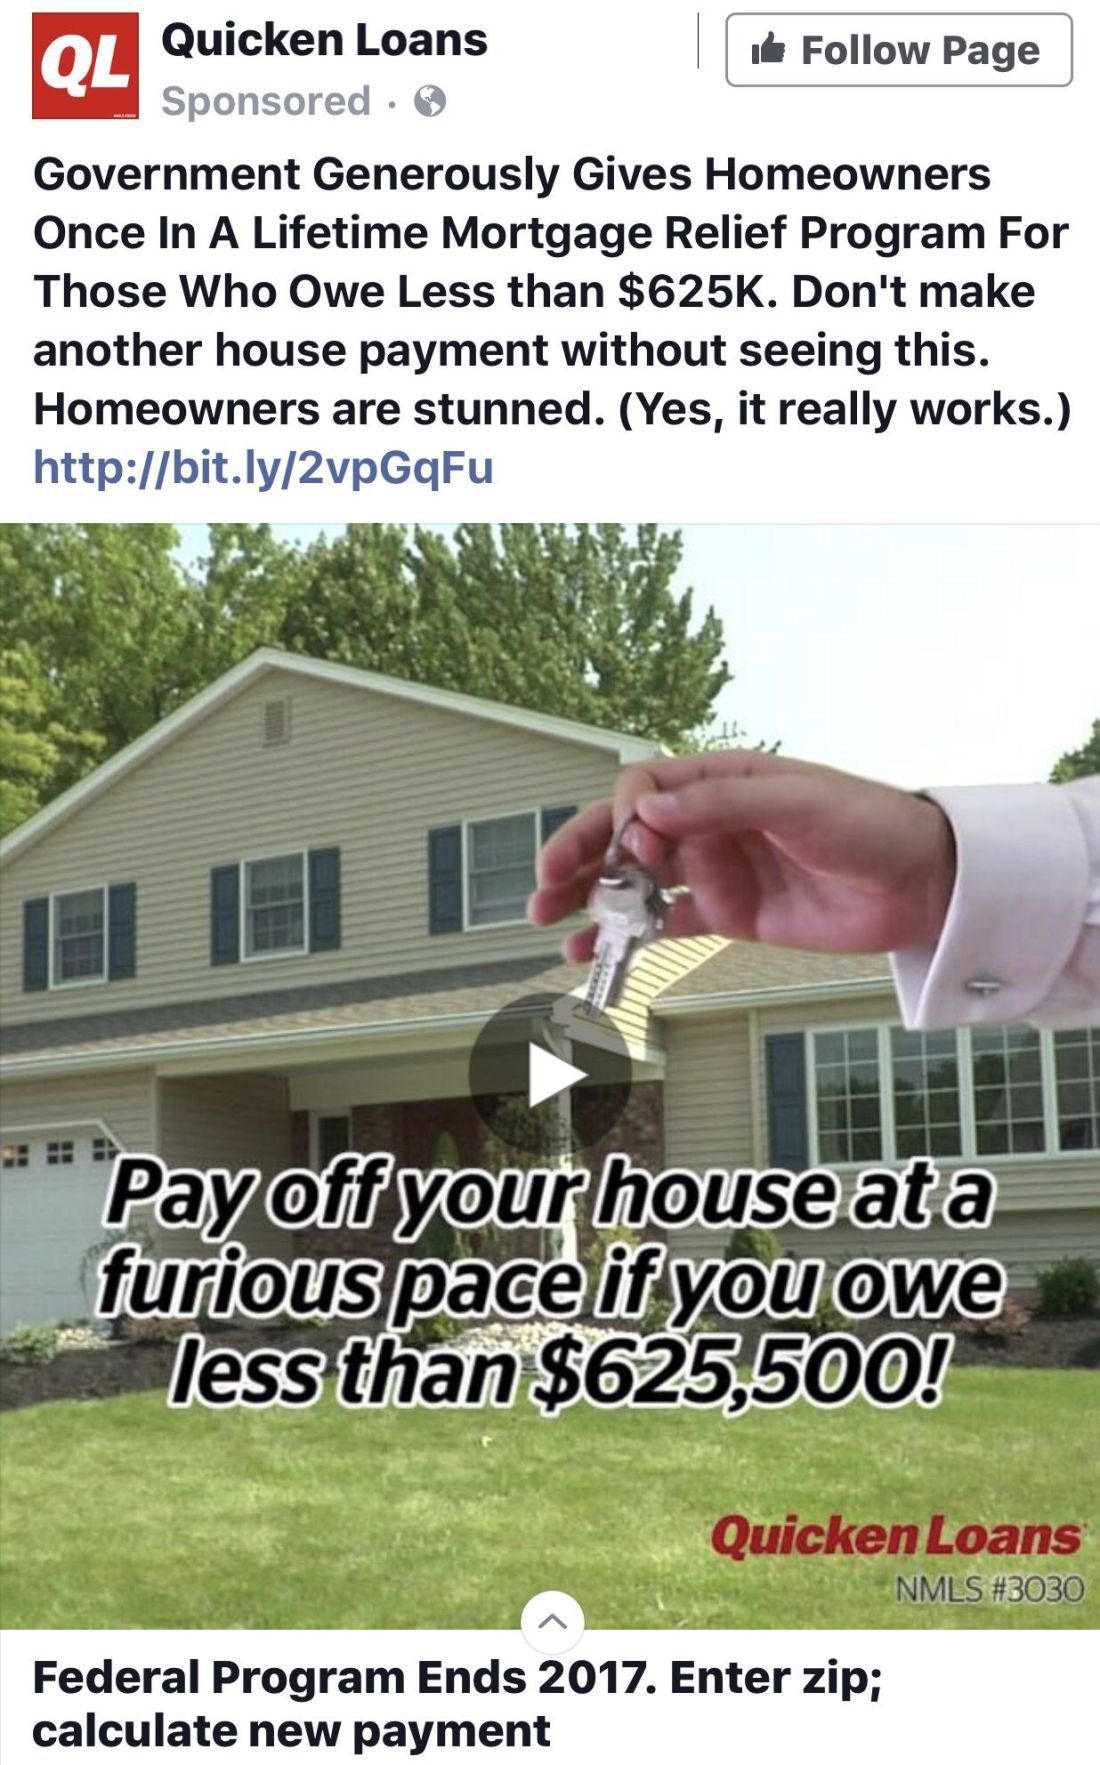 how long does it take to refinance a house with quicken loans